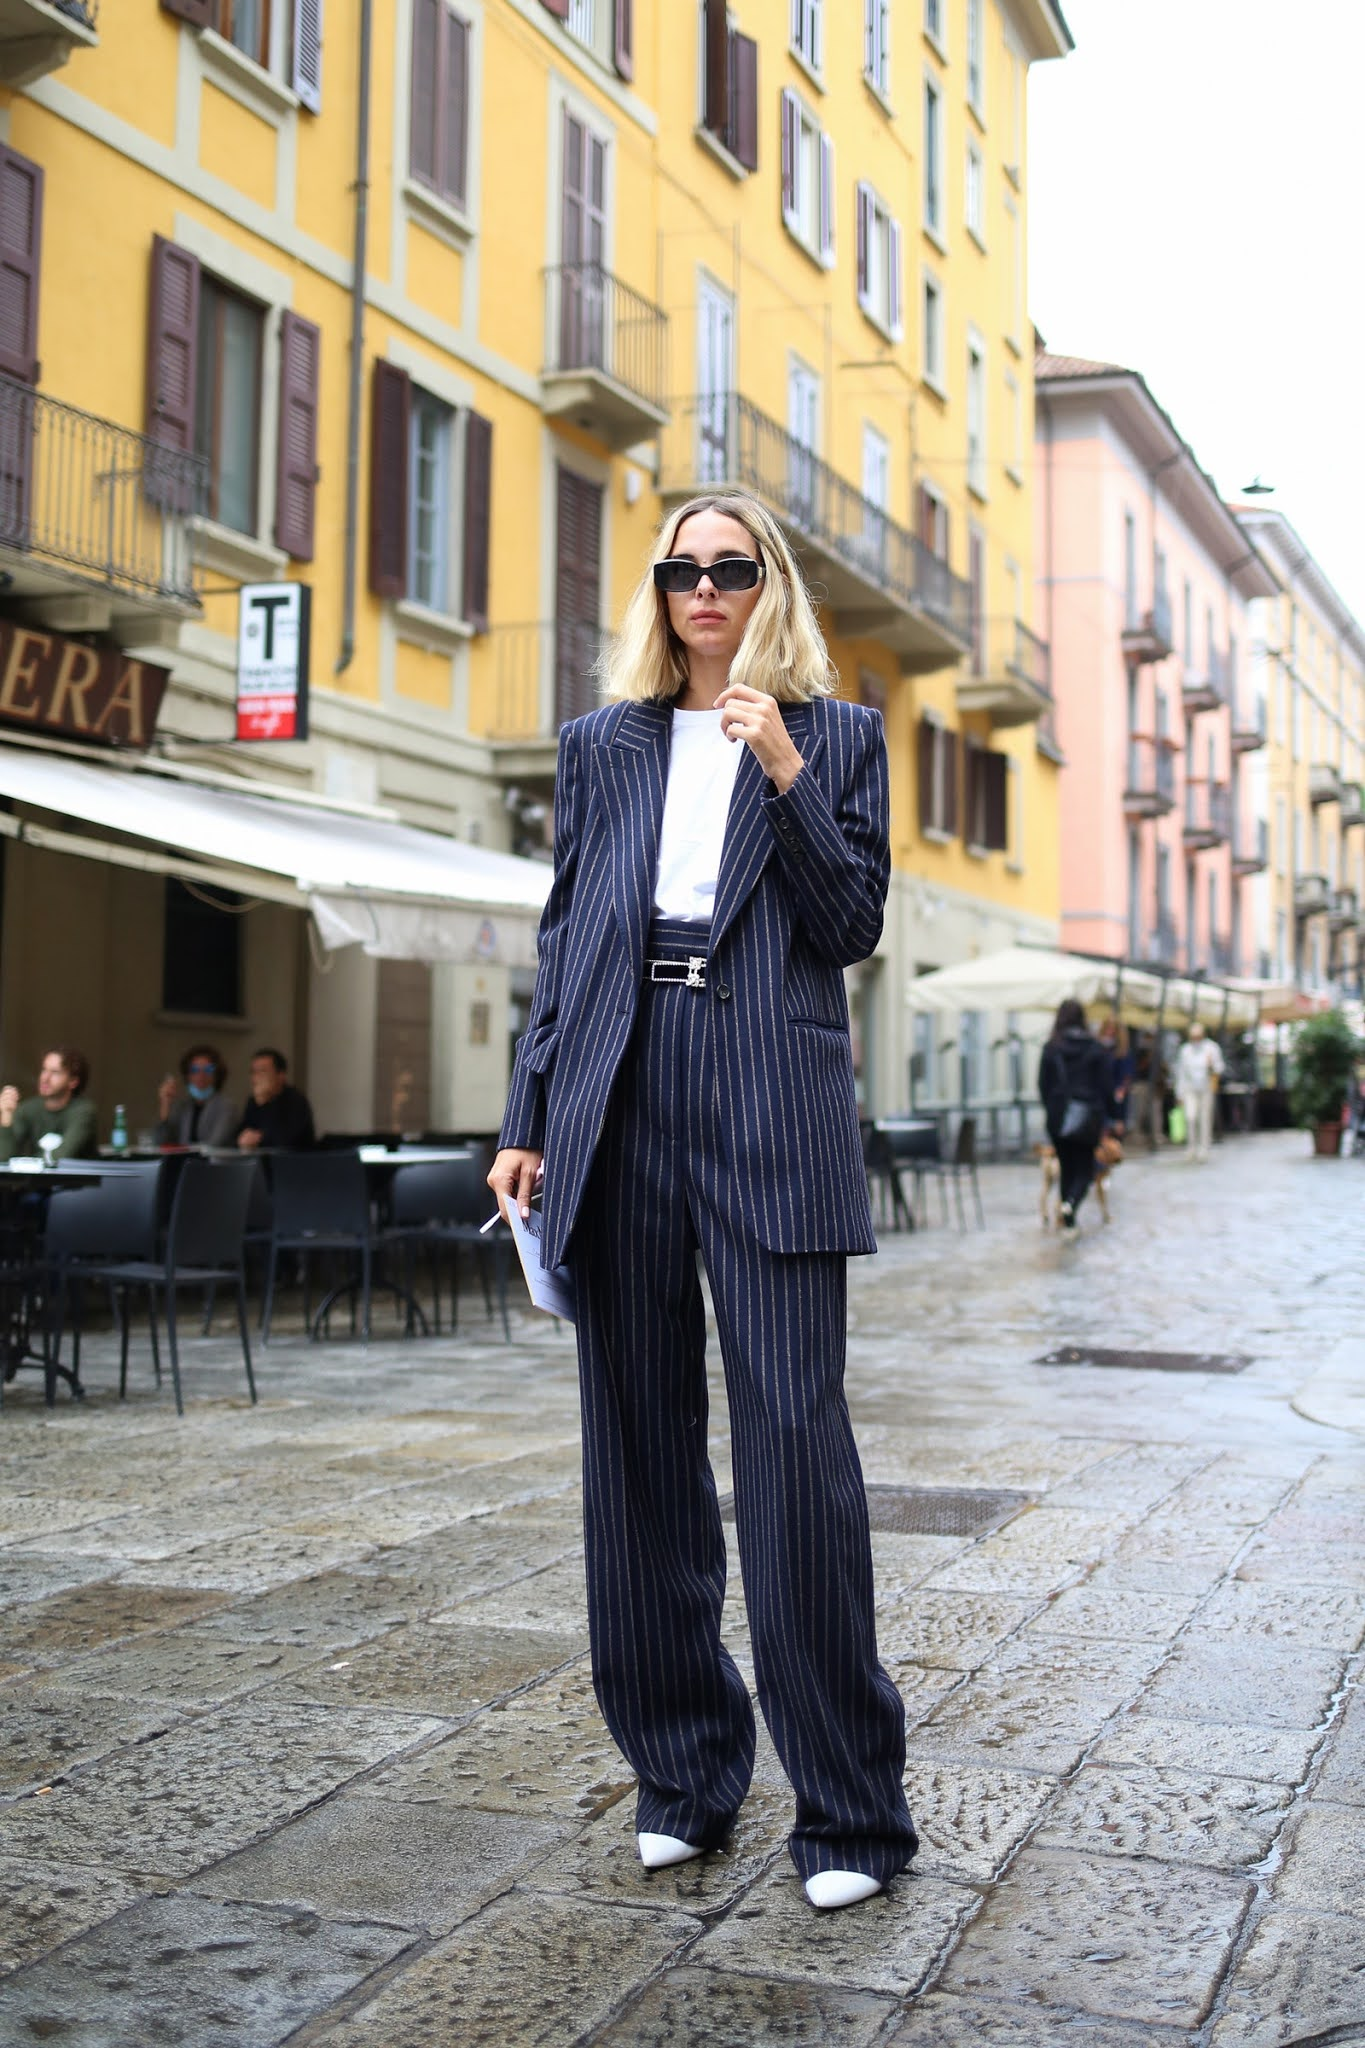 How to Wear a Suit for Casual Days and Zoom Meetings  — Street style outfit idea with a pinstripe suit